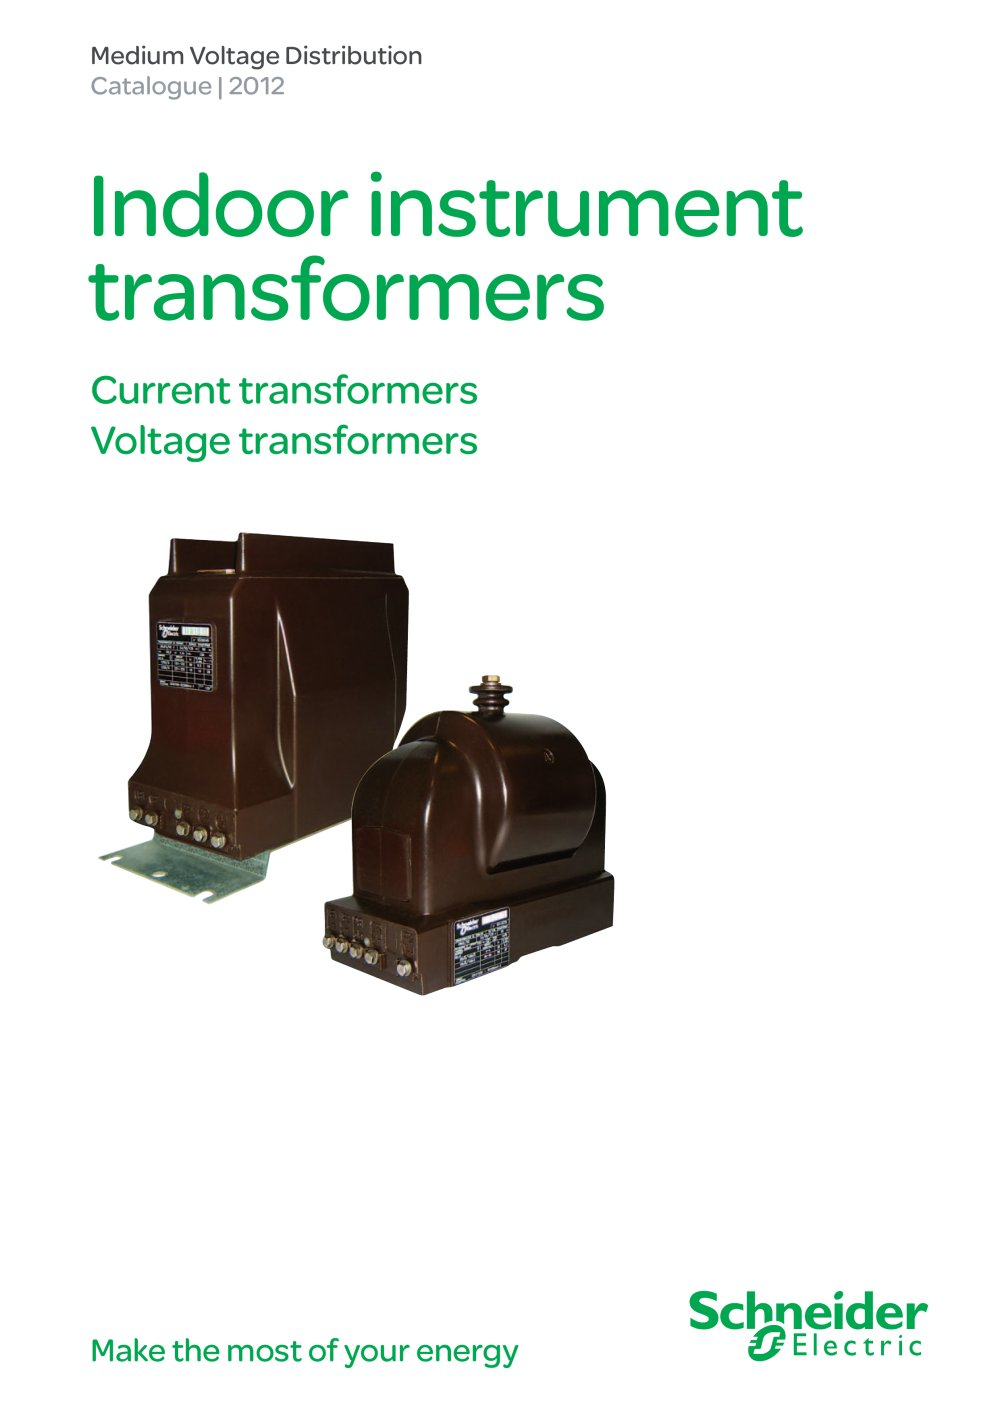 Icatalogue Ct Vt Schneider Electric Electrical Distribution Instrument Transformer Wiring Diagram 1 52 Pages